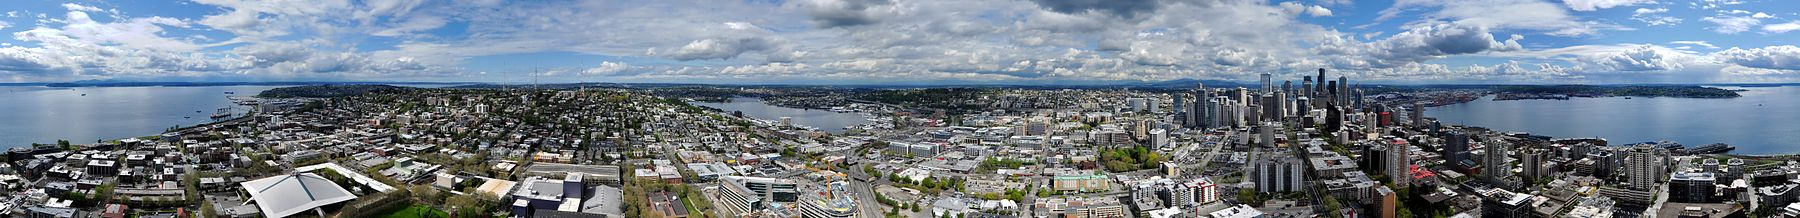 Space Needle 360 Panorama.jpg